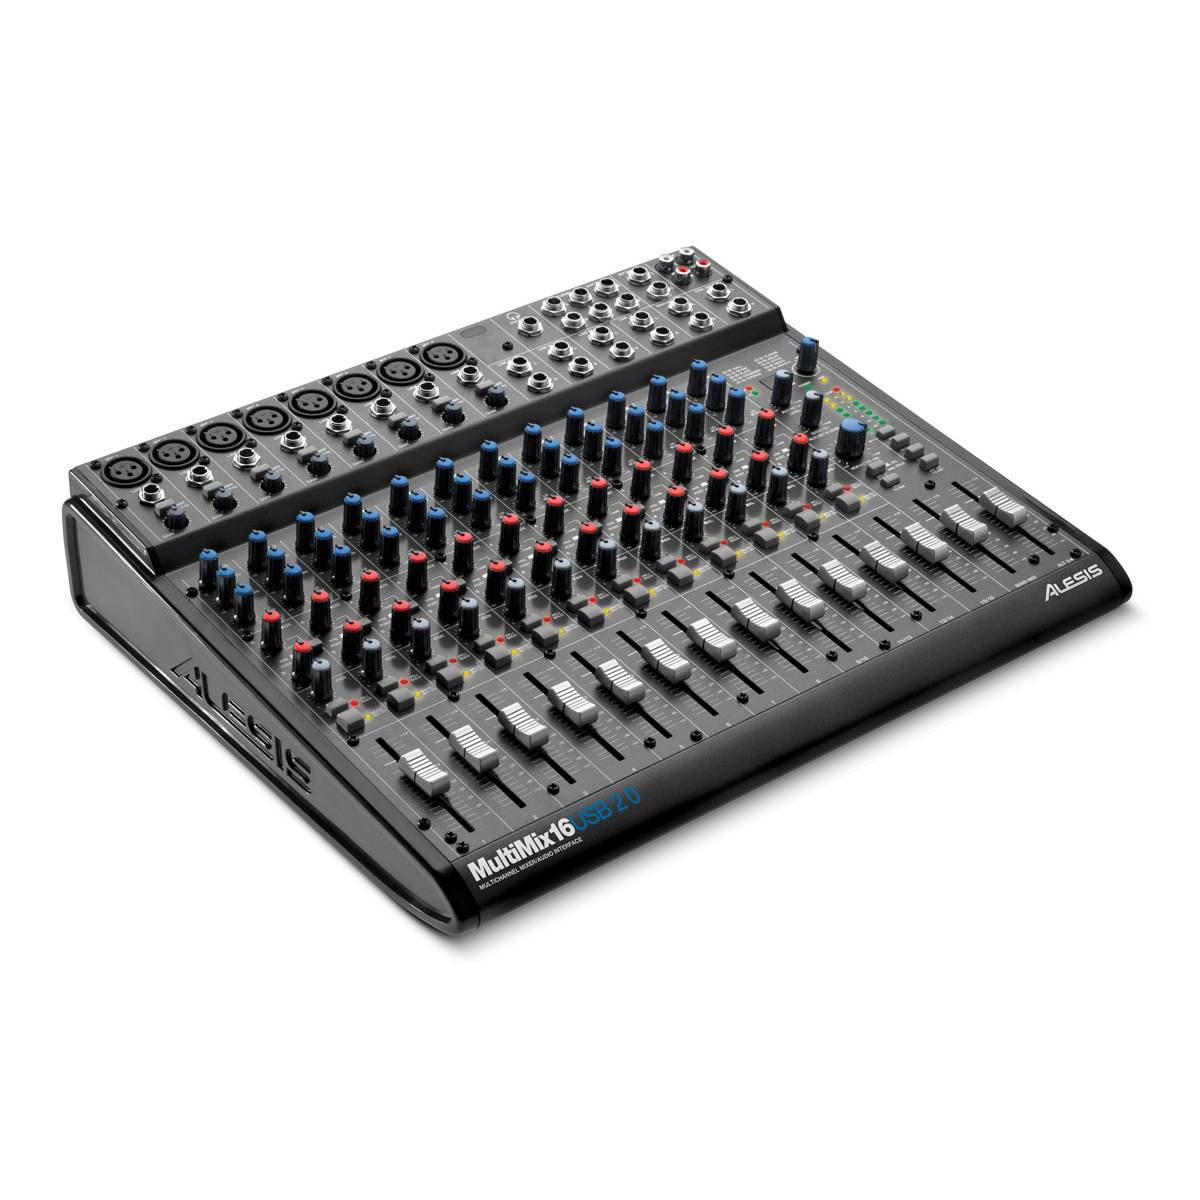 Alesis Multimix 16 Usb 2 0 Mixer Audio Interface